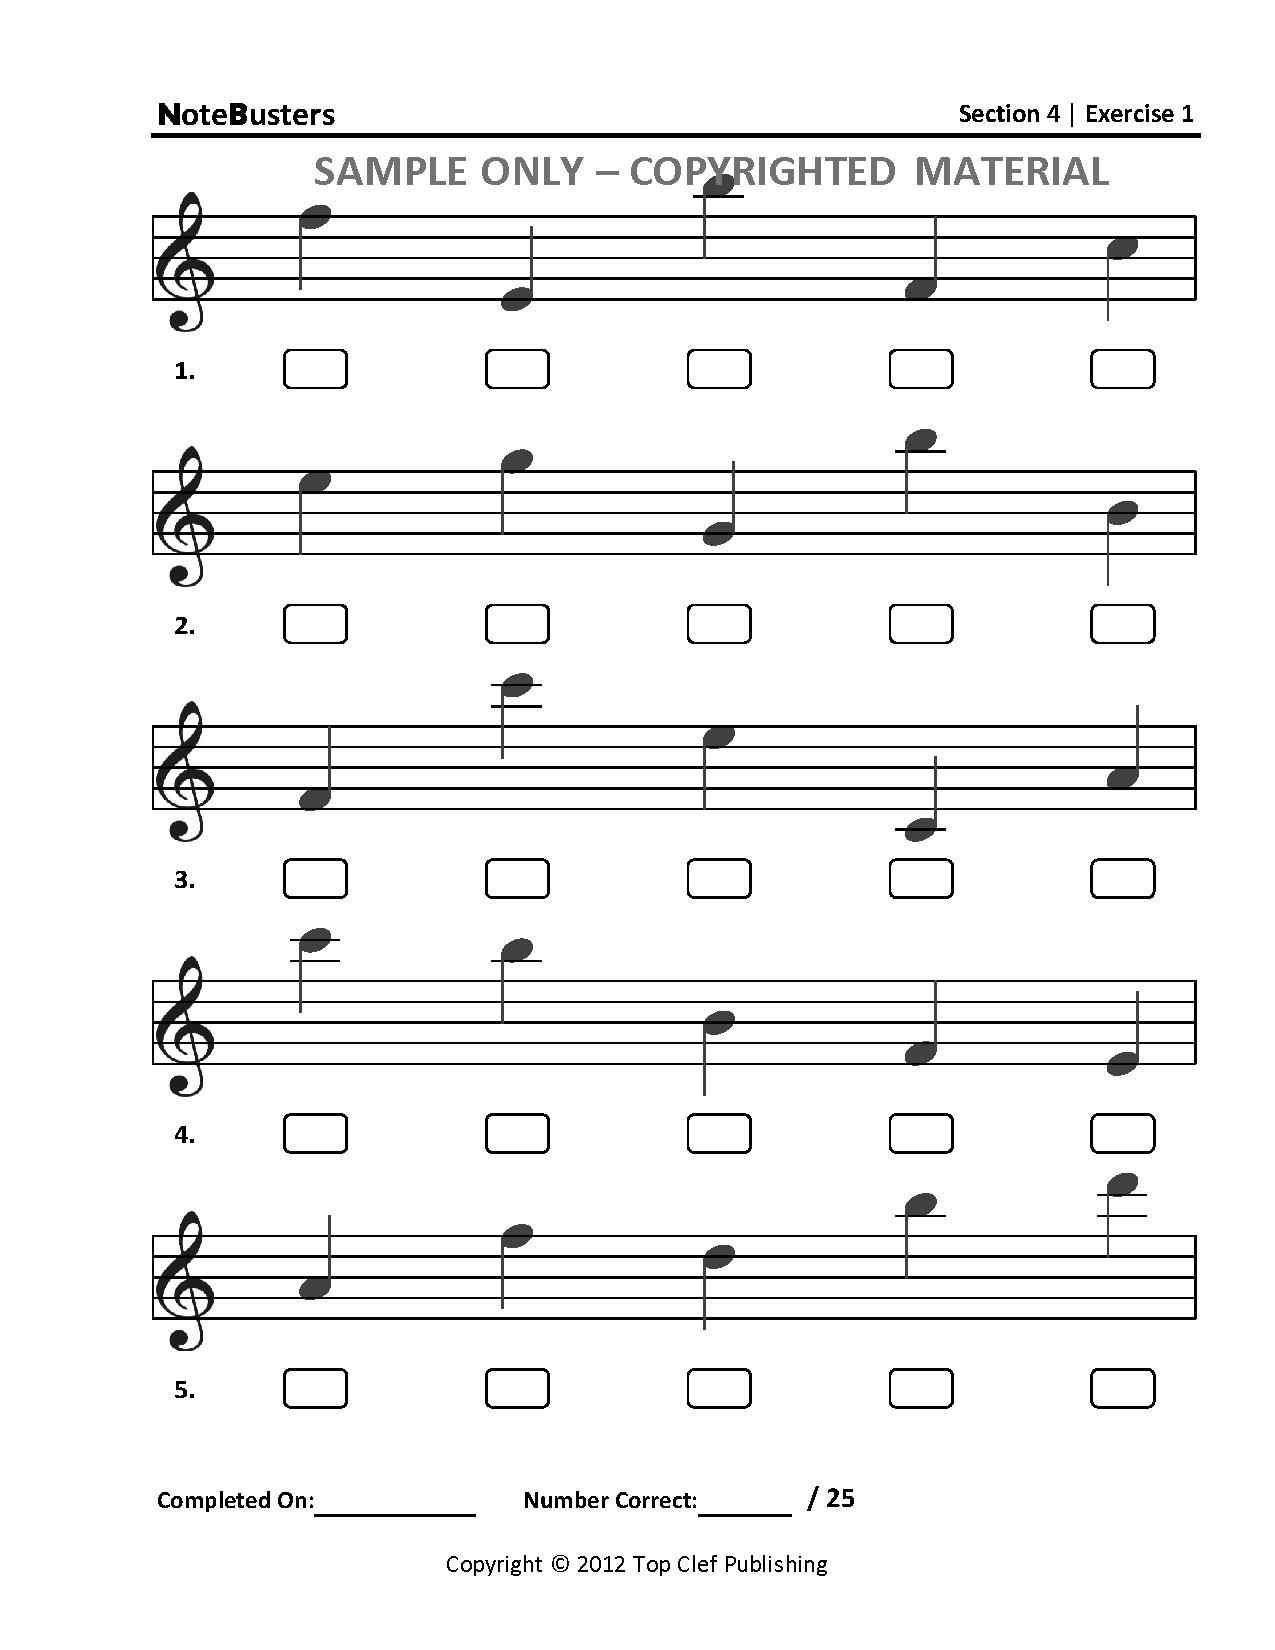 worksheet Music Reading Worksheets sample exercises notebusters note reading music workbook section4 sight sample